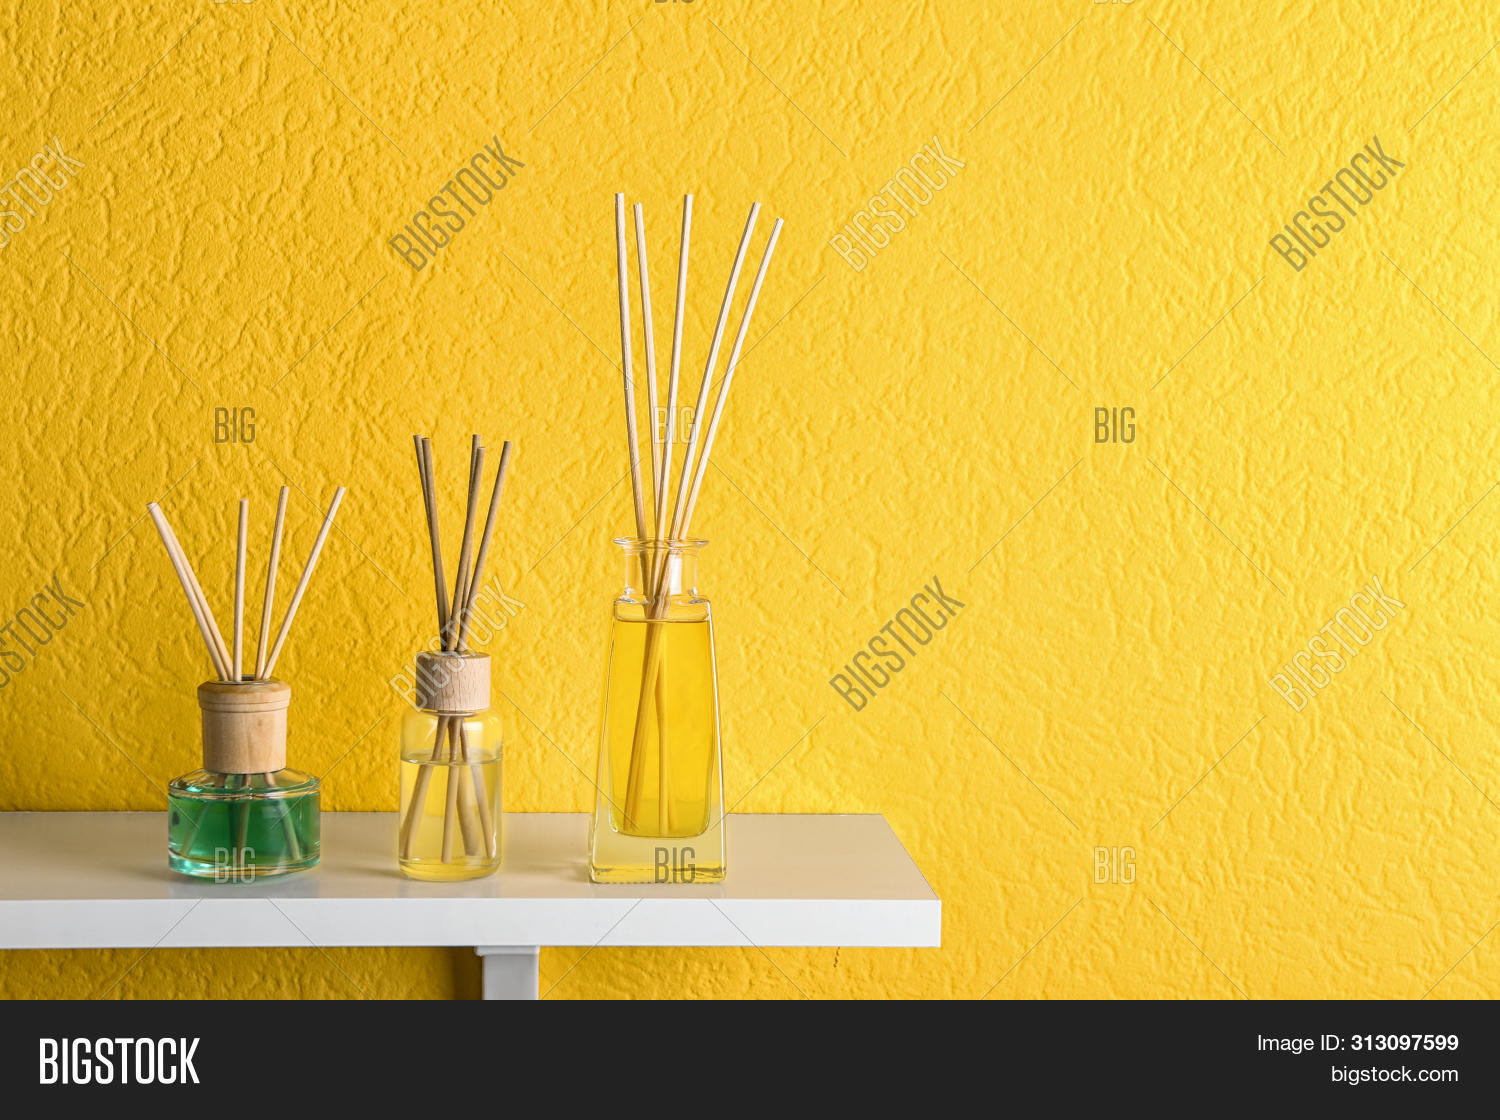 Reed air fresheners on table against yellow background, space for text